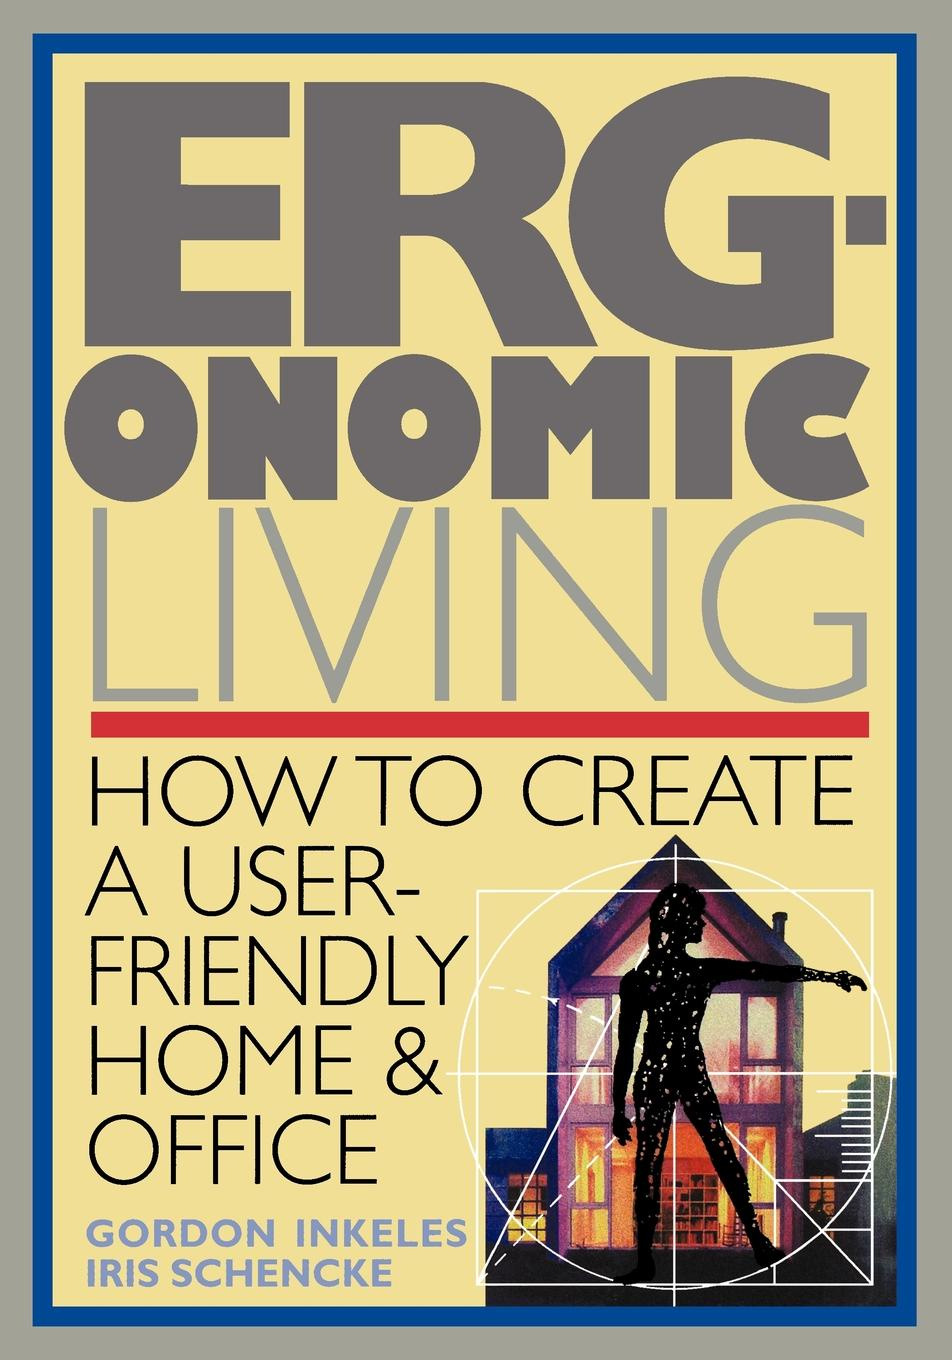 Gordon Inkeles Ergonomic Living. How to Create a User-Friendly Home & Officer